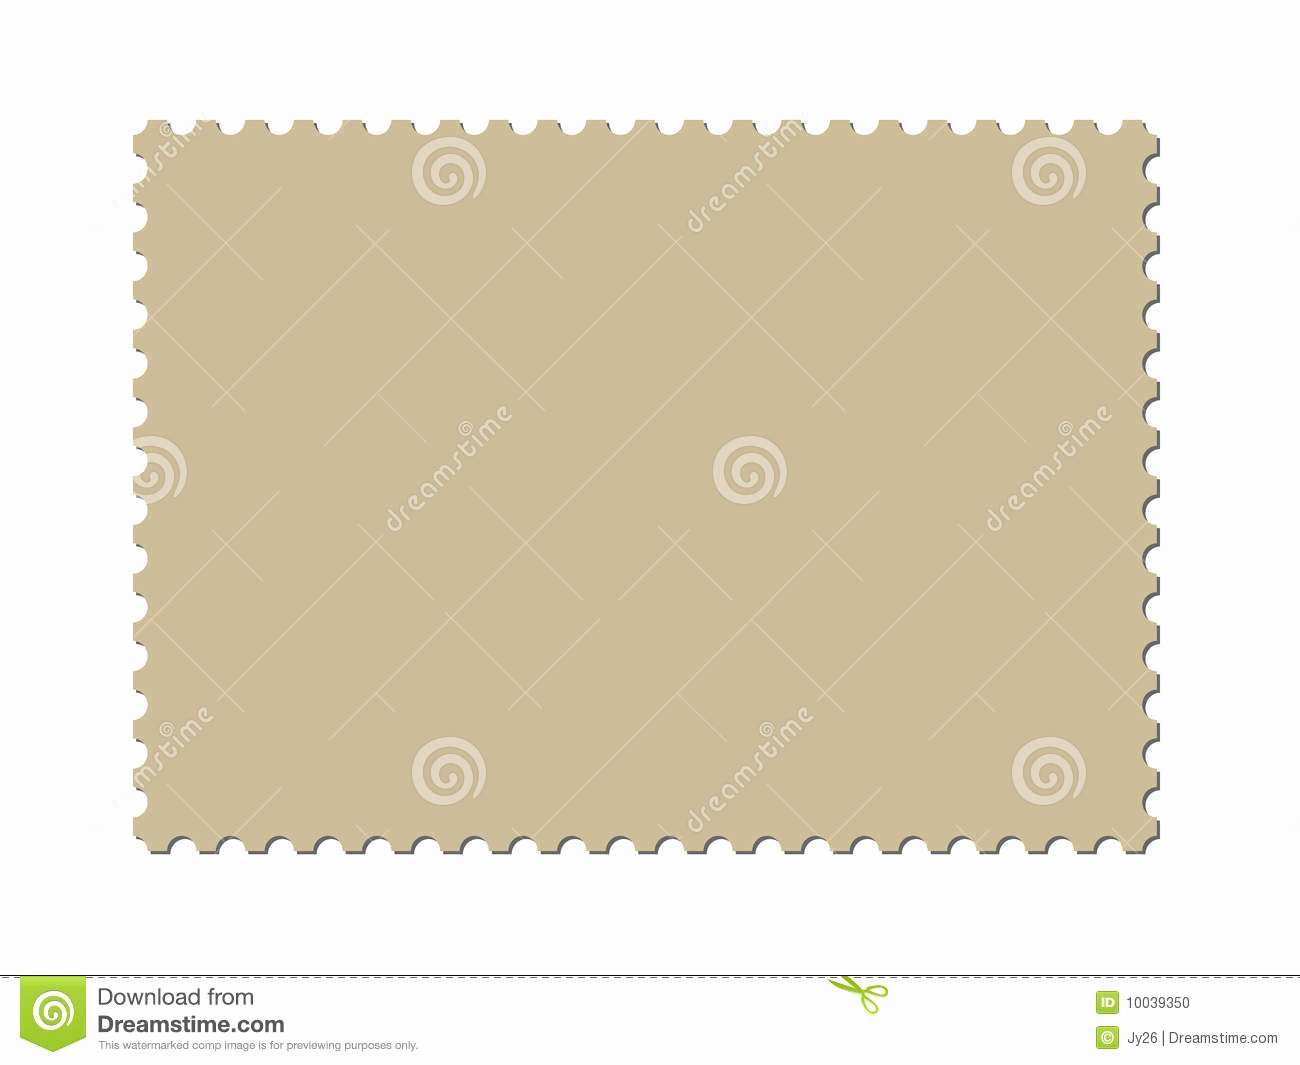 Blank Stamp Template Elegant A Blank Postage Stamp Template Vector Included Stock